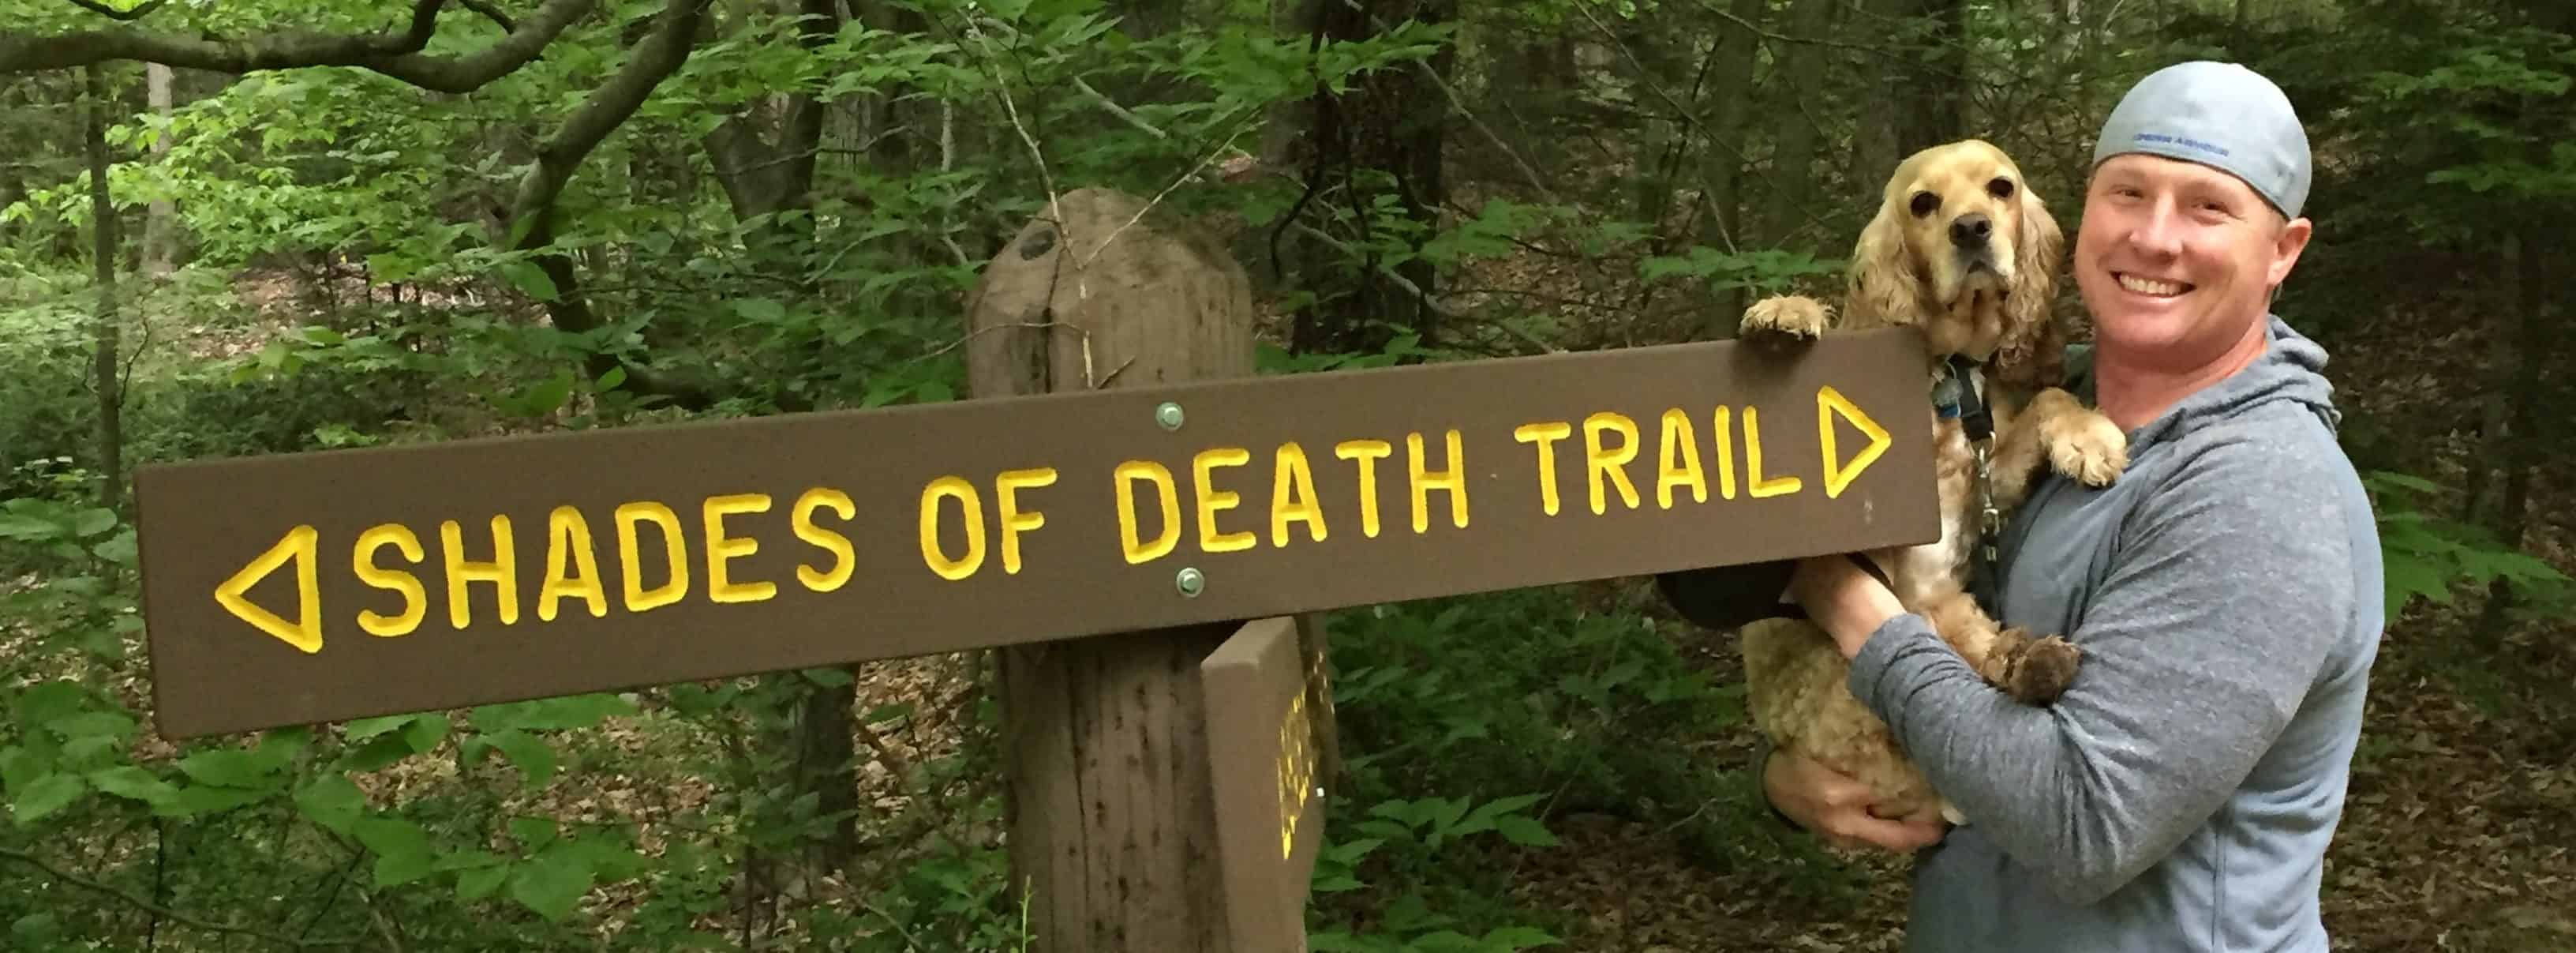 Shades of Death Trail